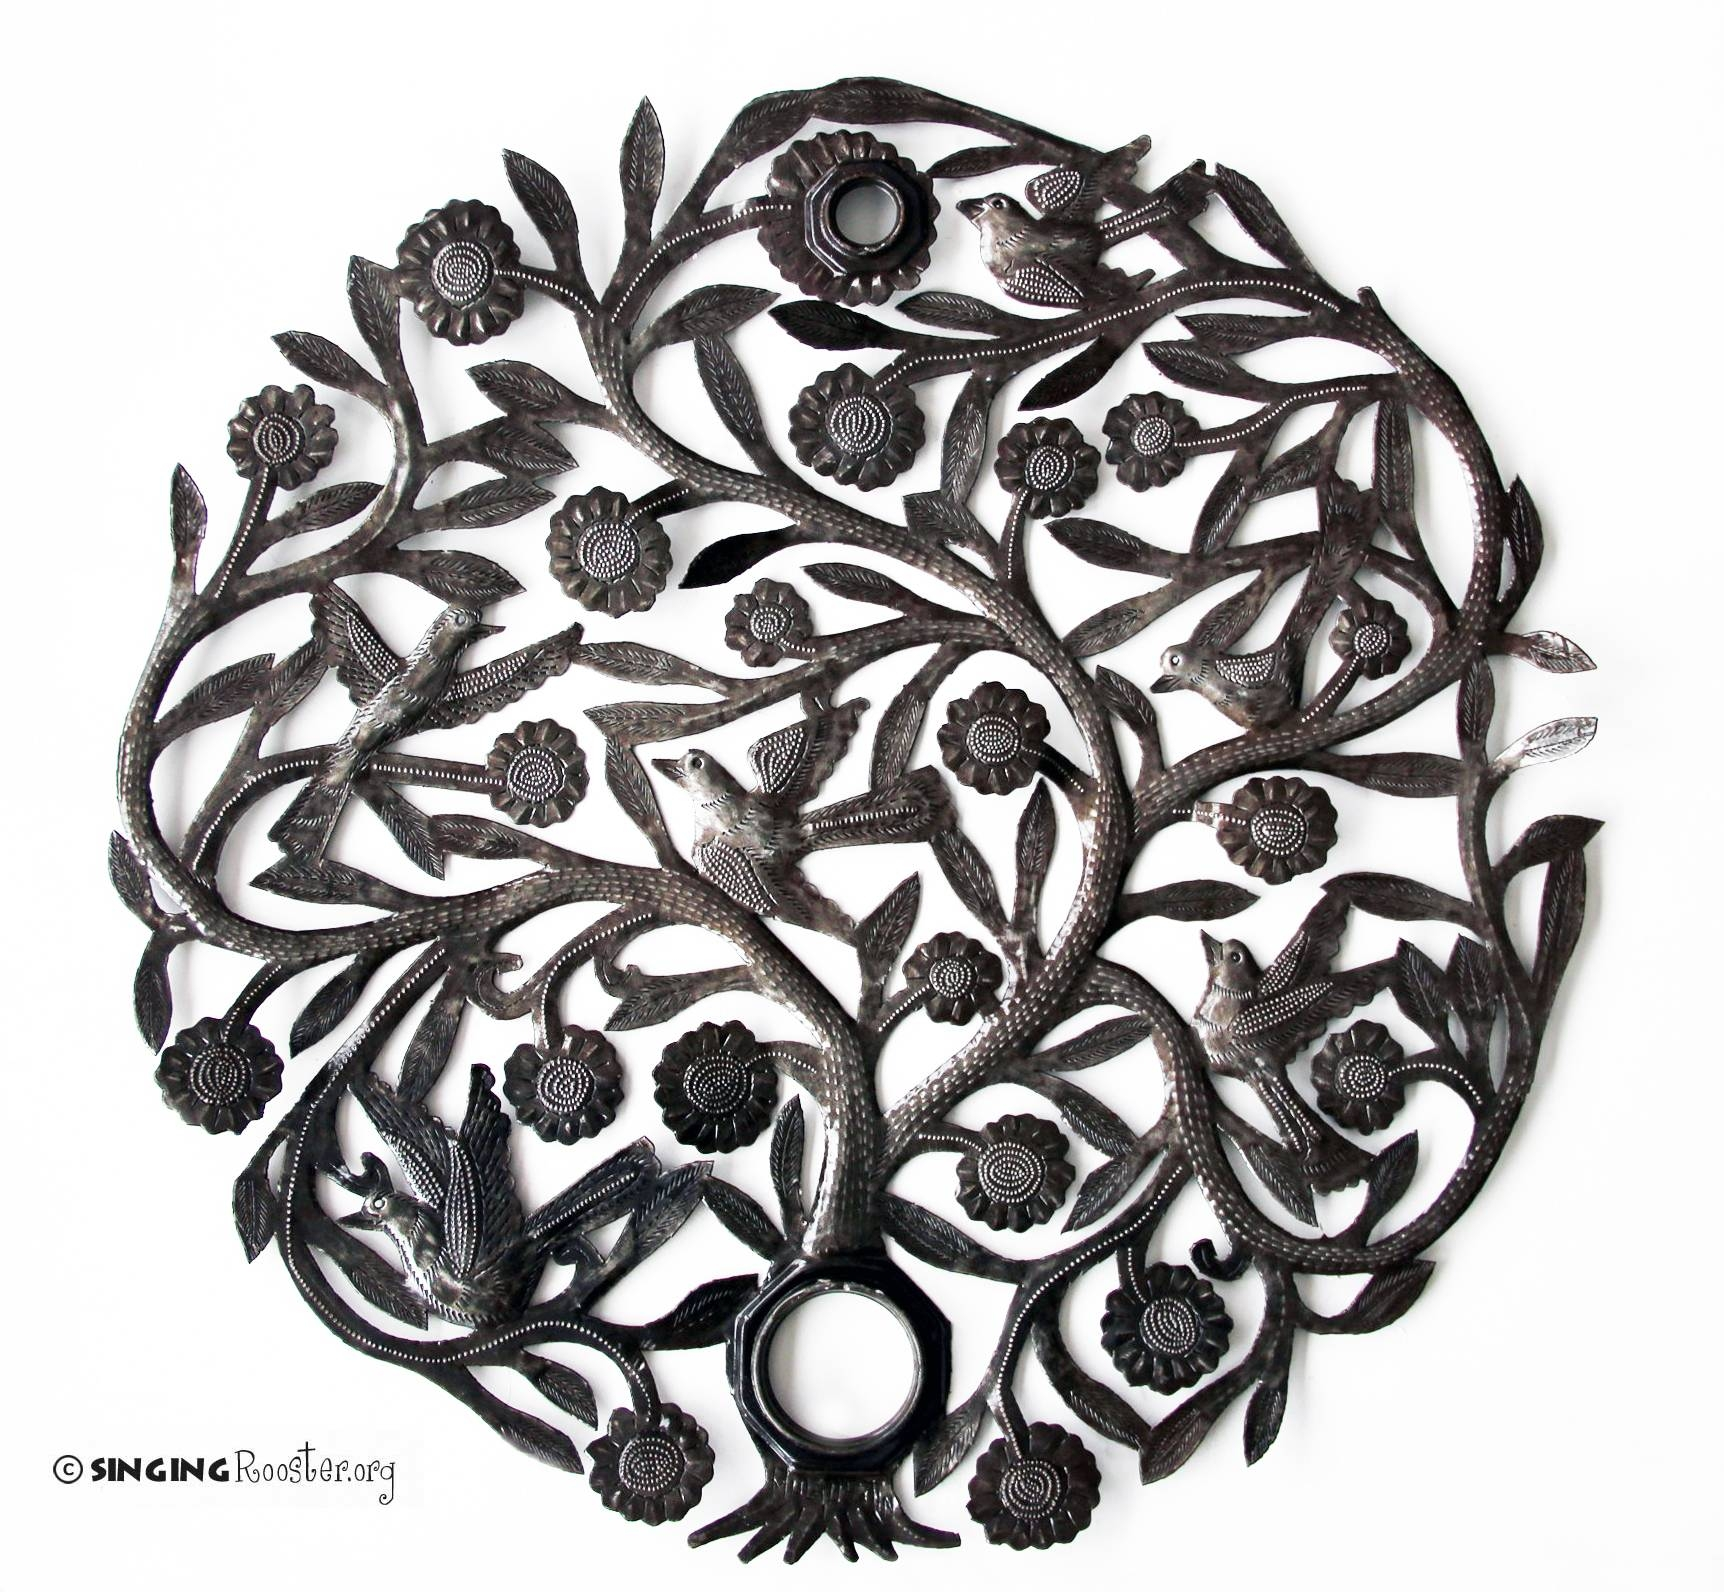 Tree Of Life Metal Wall Art, Recycled Oil Drum; Handmade In Haiti Throughout Most Recent Haitian Metal Wall Art (View 17 of 20)